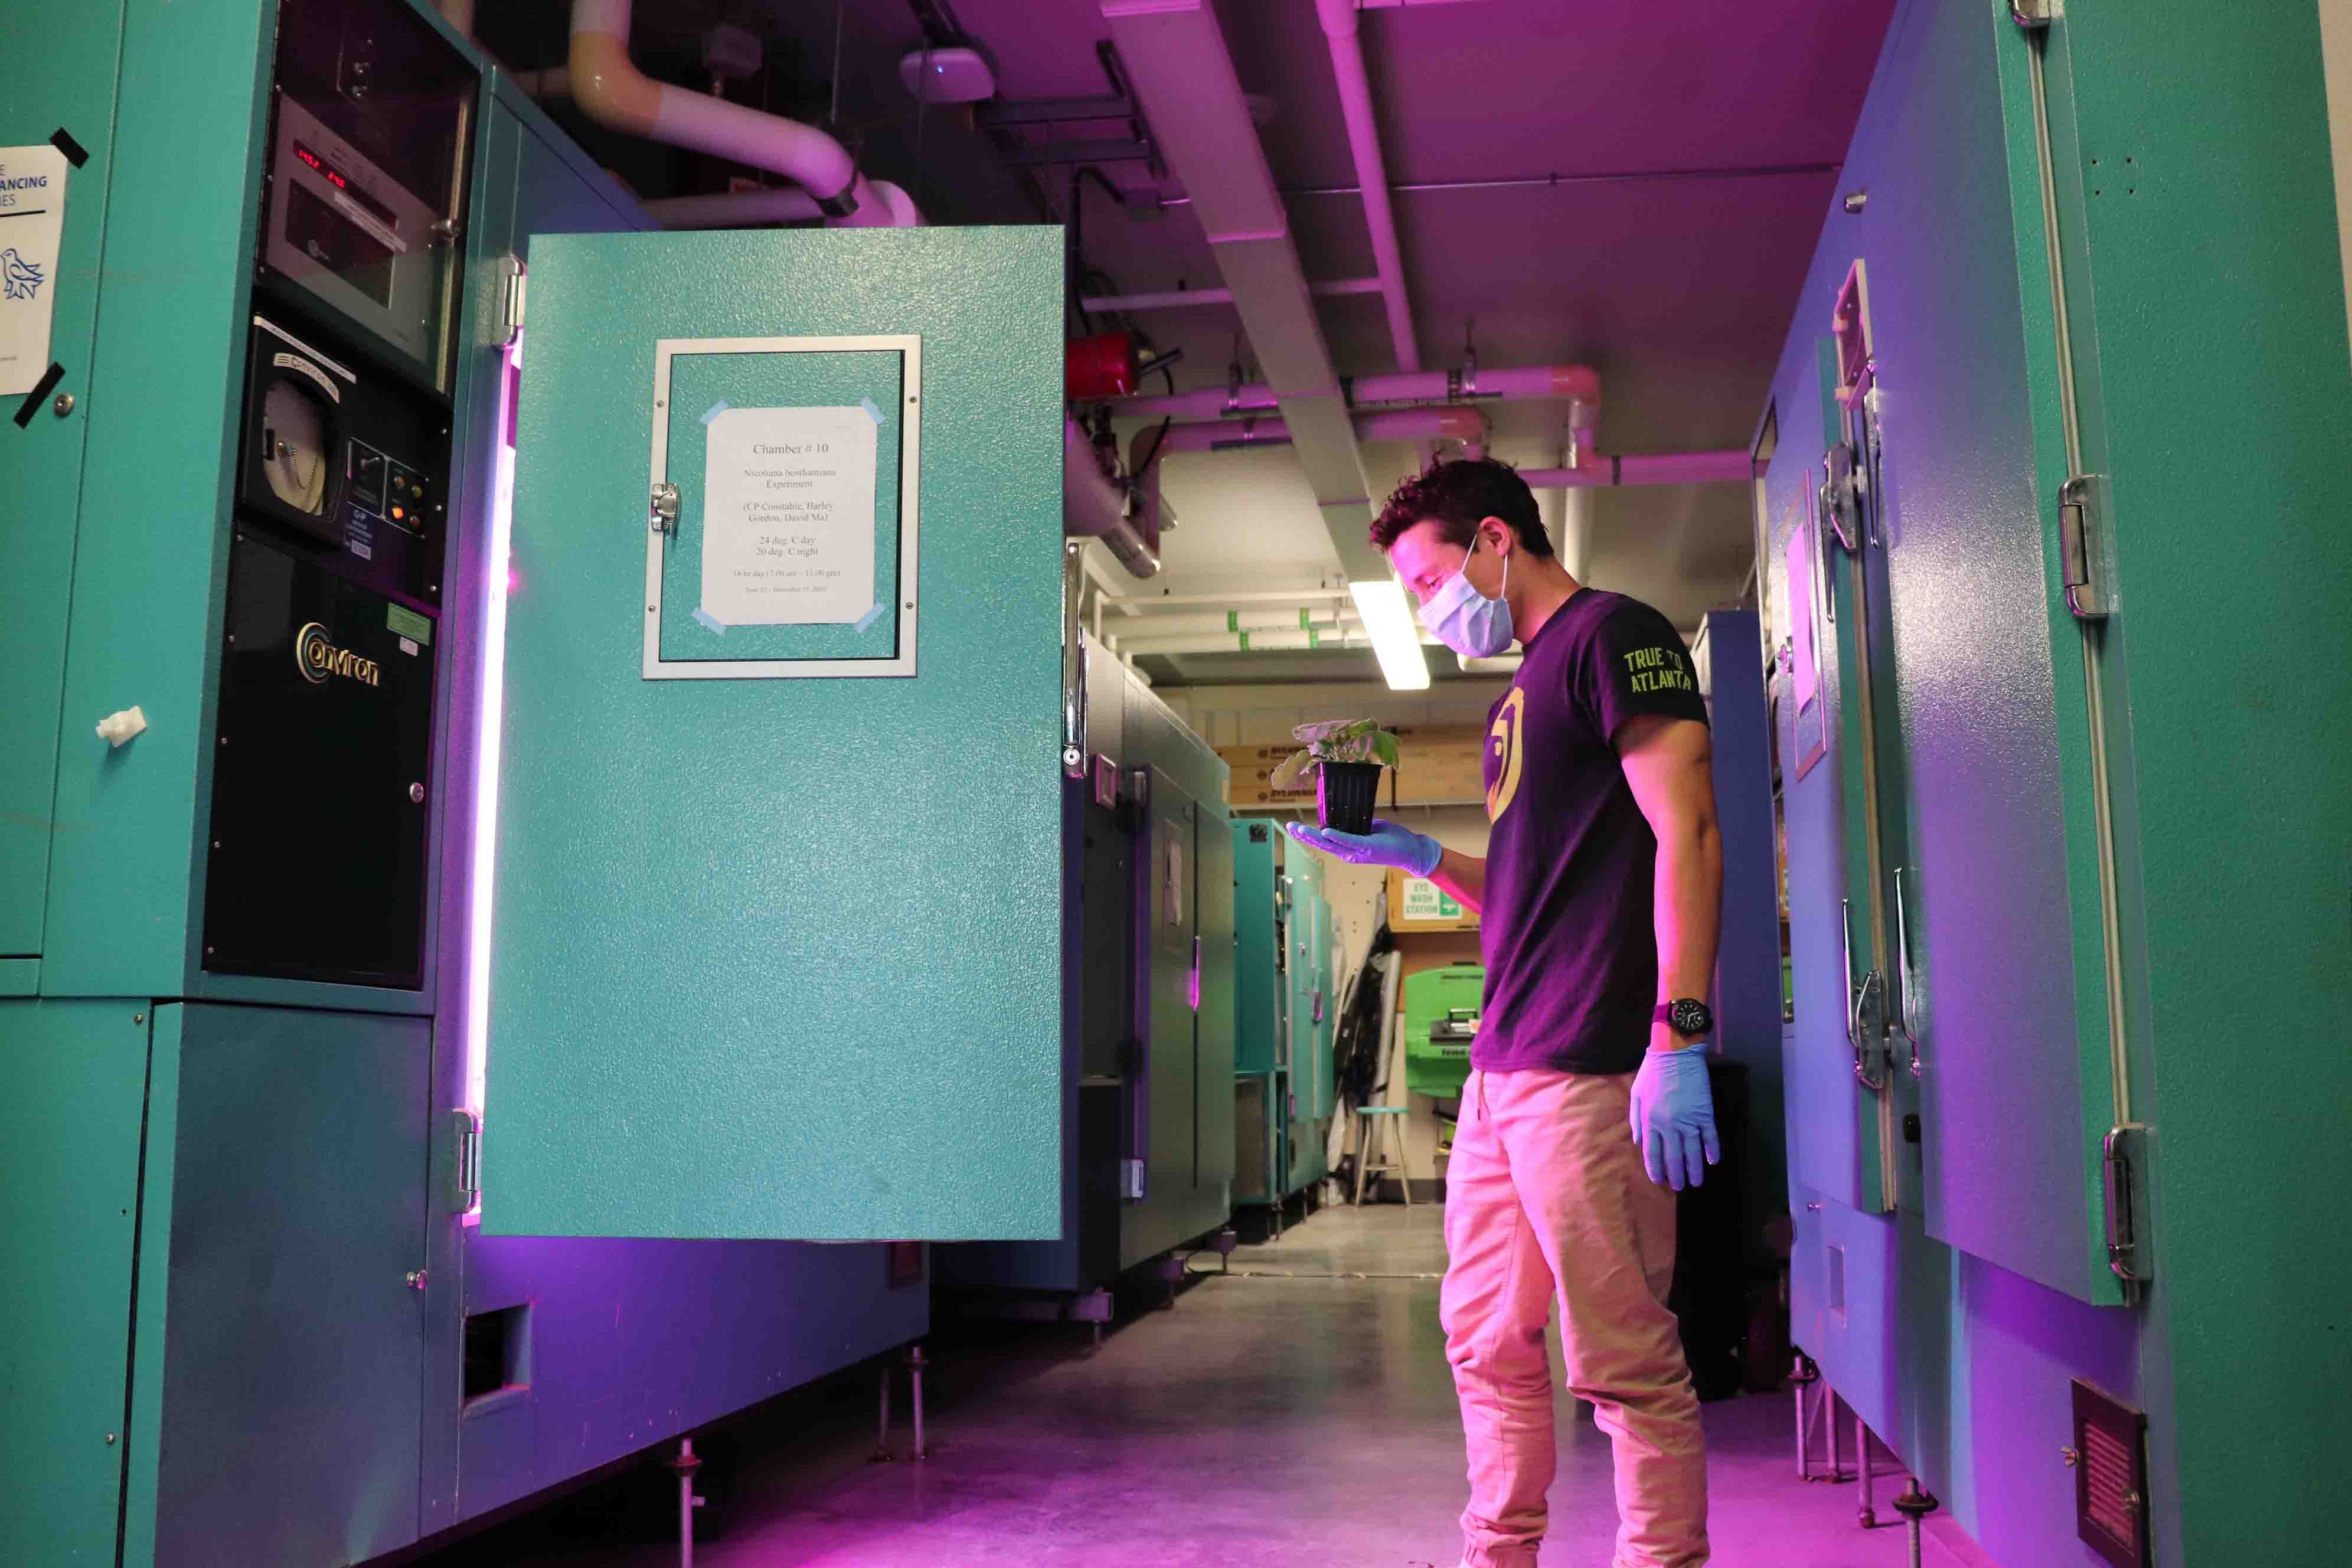 University of Victoria Plant Growth Chamber